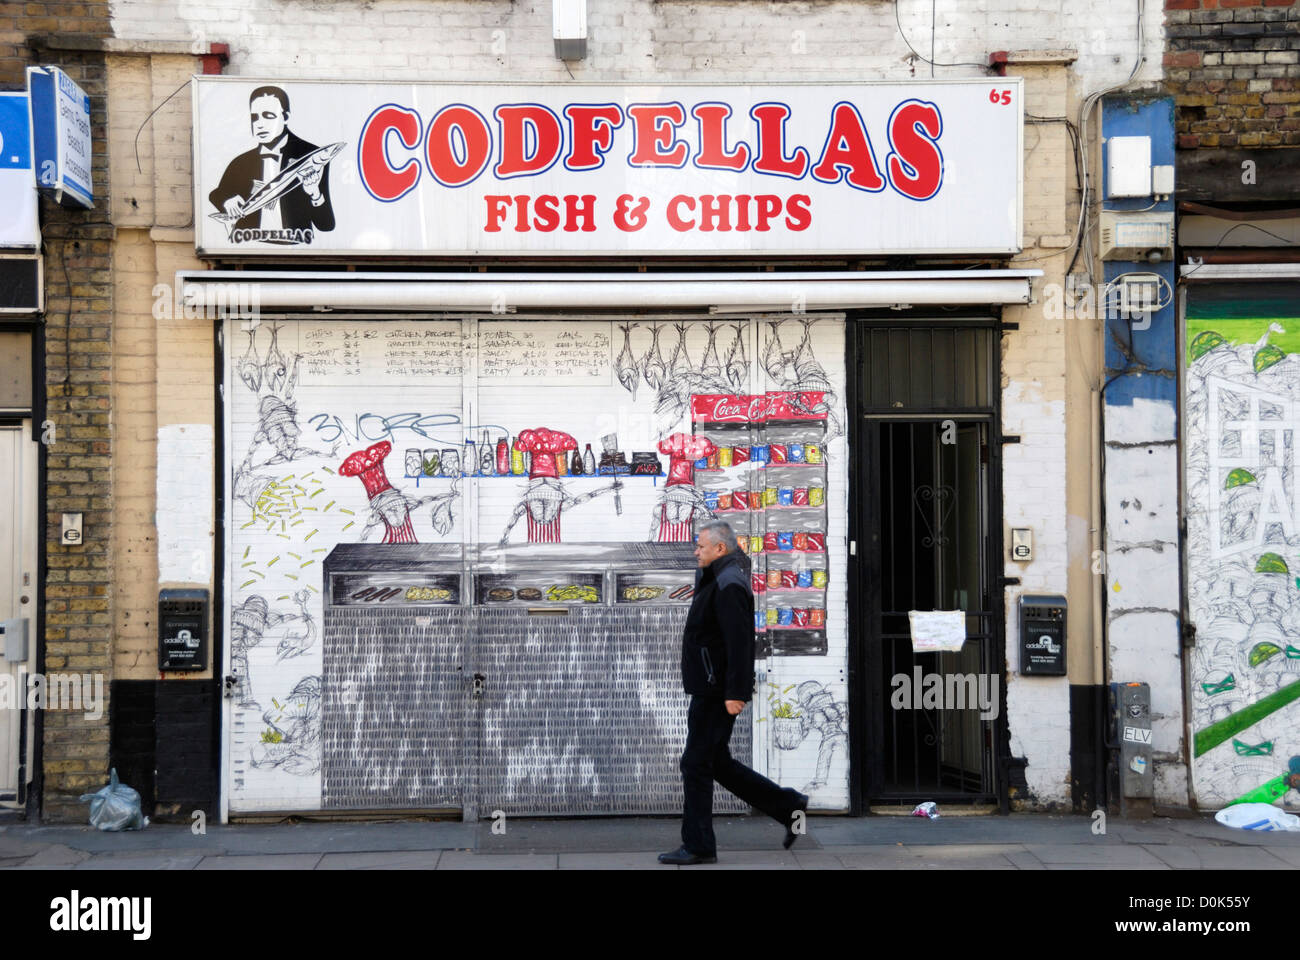 Exterior of Codfellas fish and chip shop in Spitalfields. Stock Photo